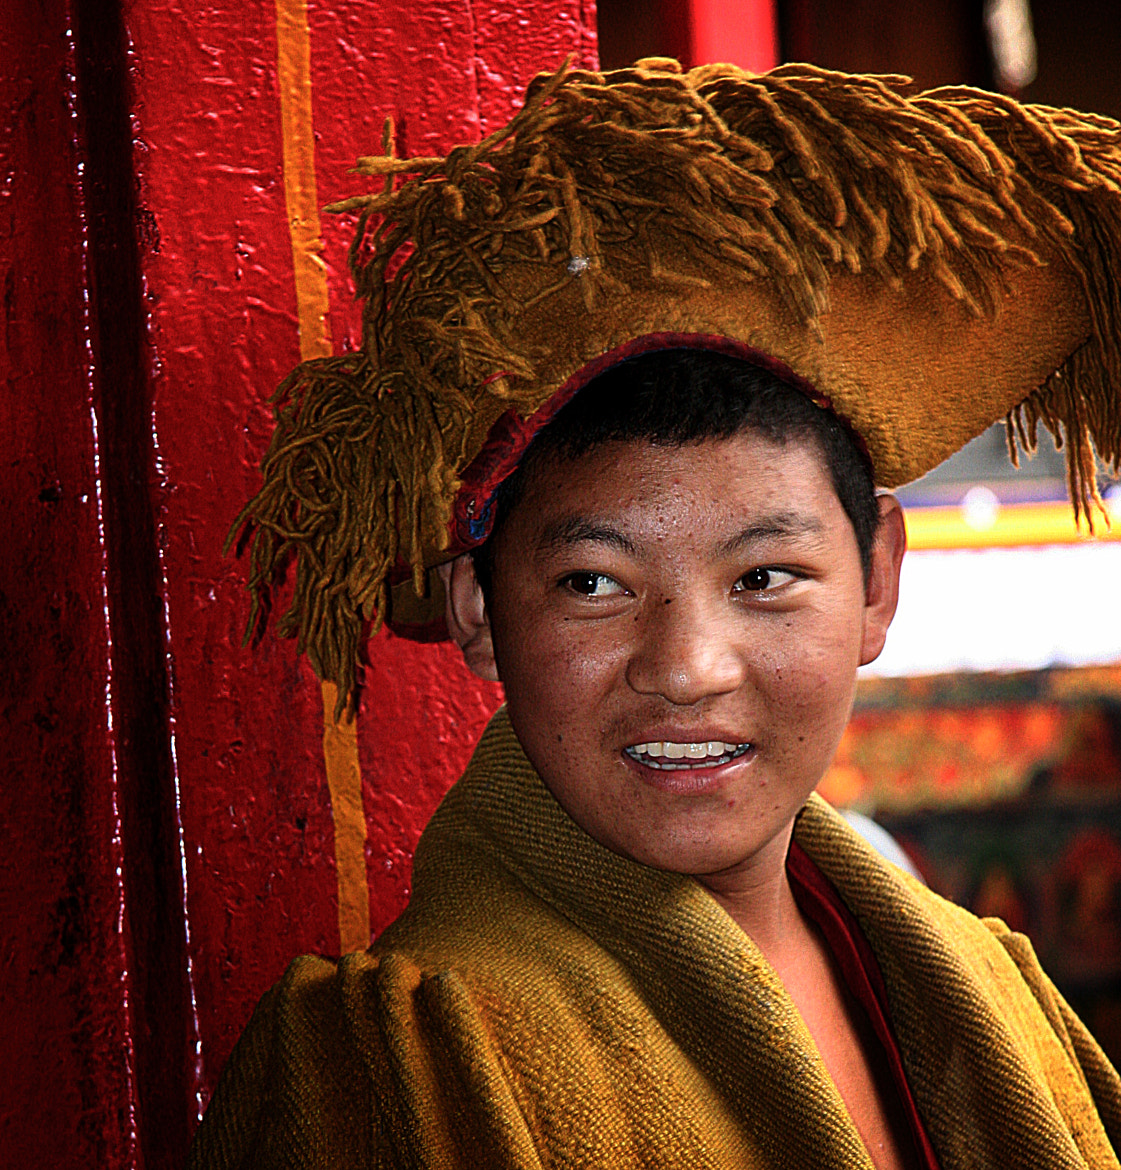 Photograph young Tibetan monk by anna carter on 500px